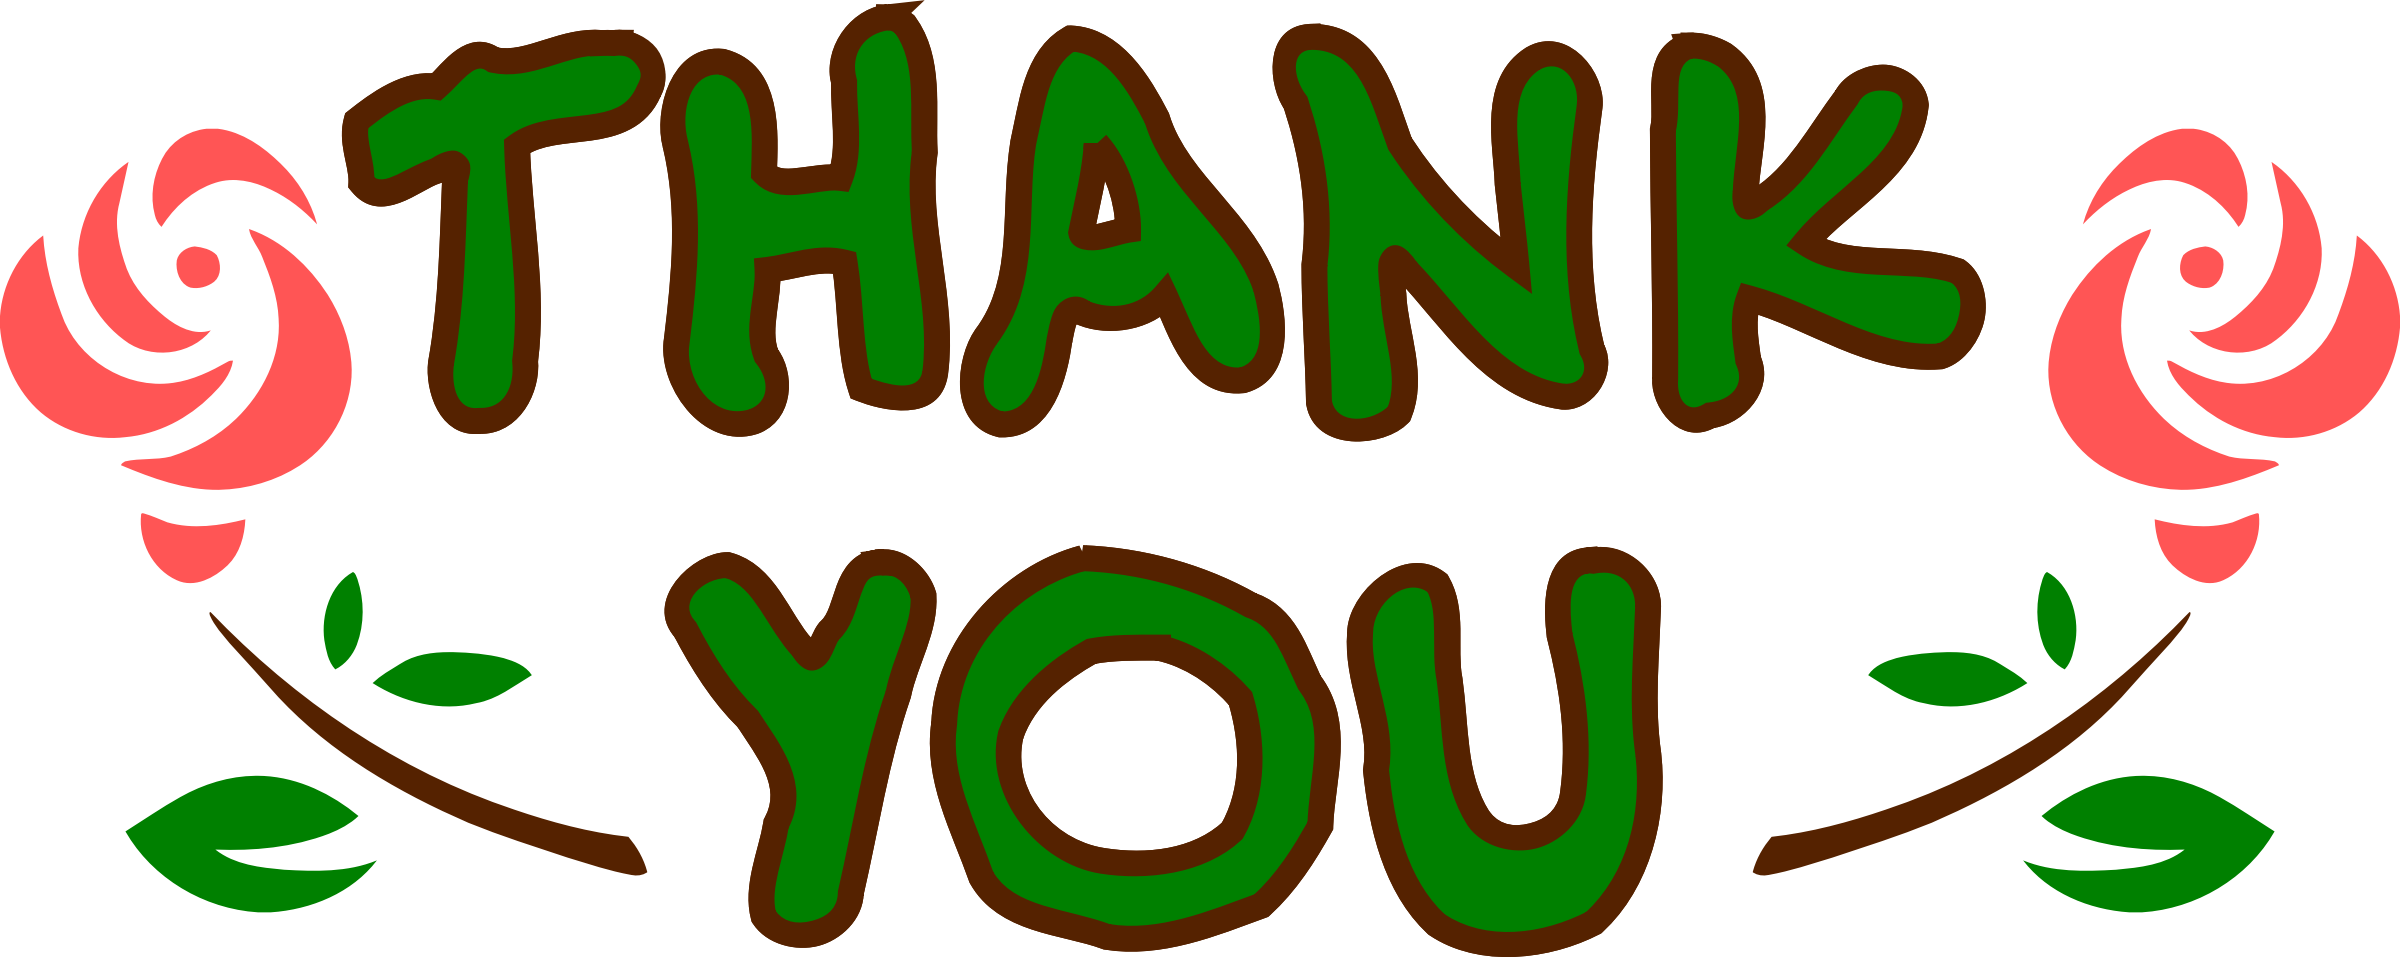 Download This Free Icons Png Design Of Thank You 2 - Full ...